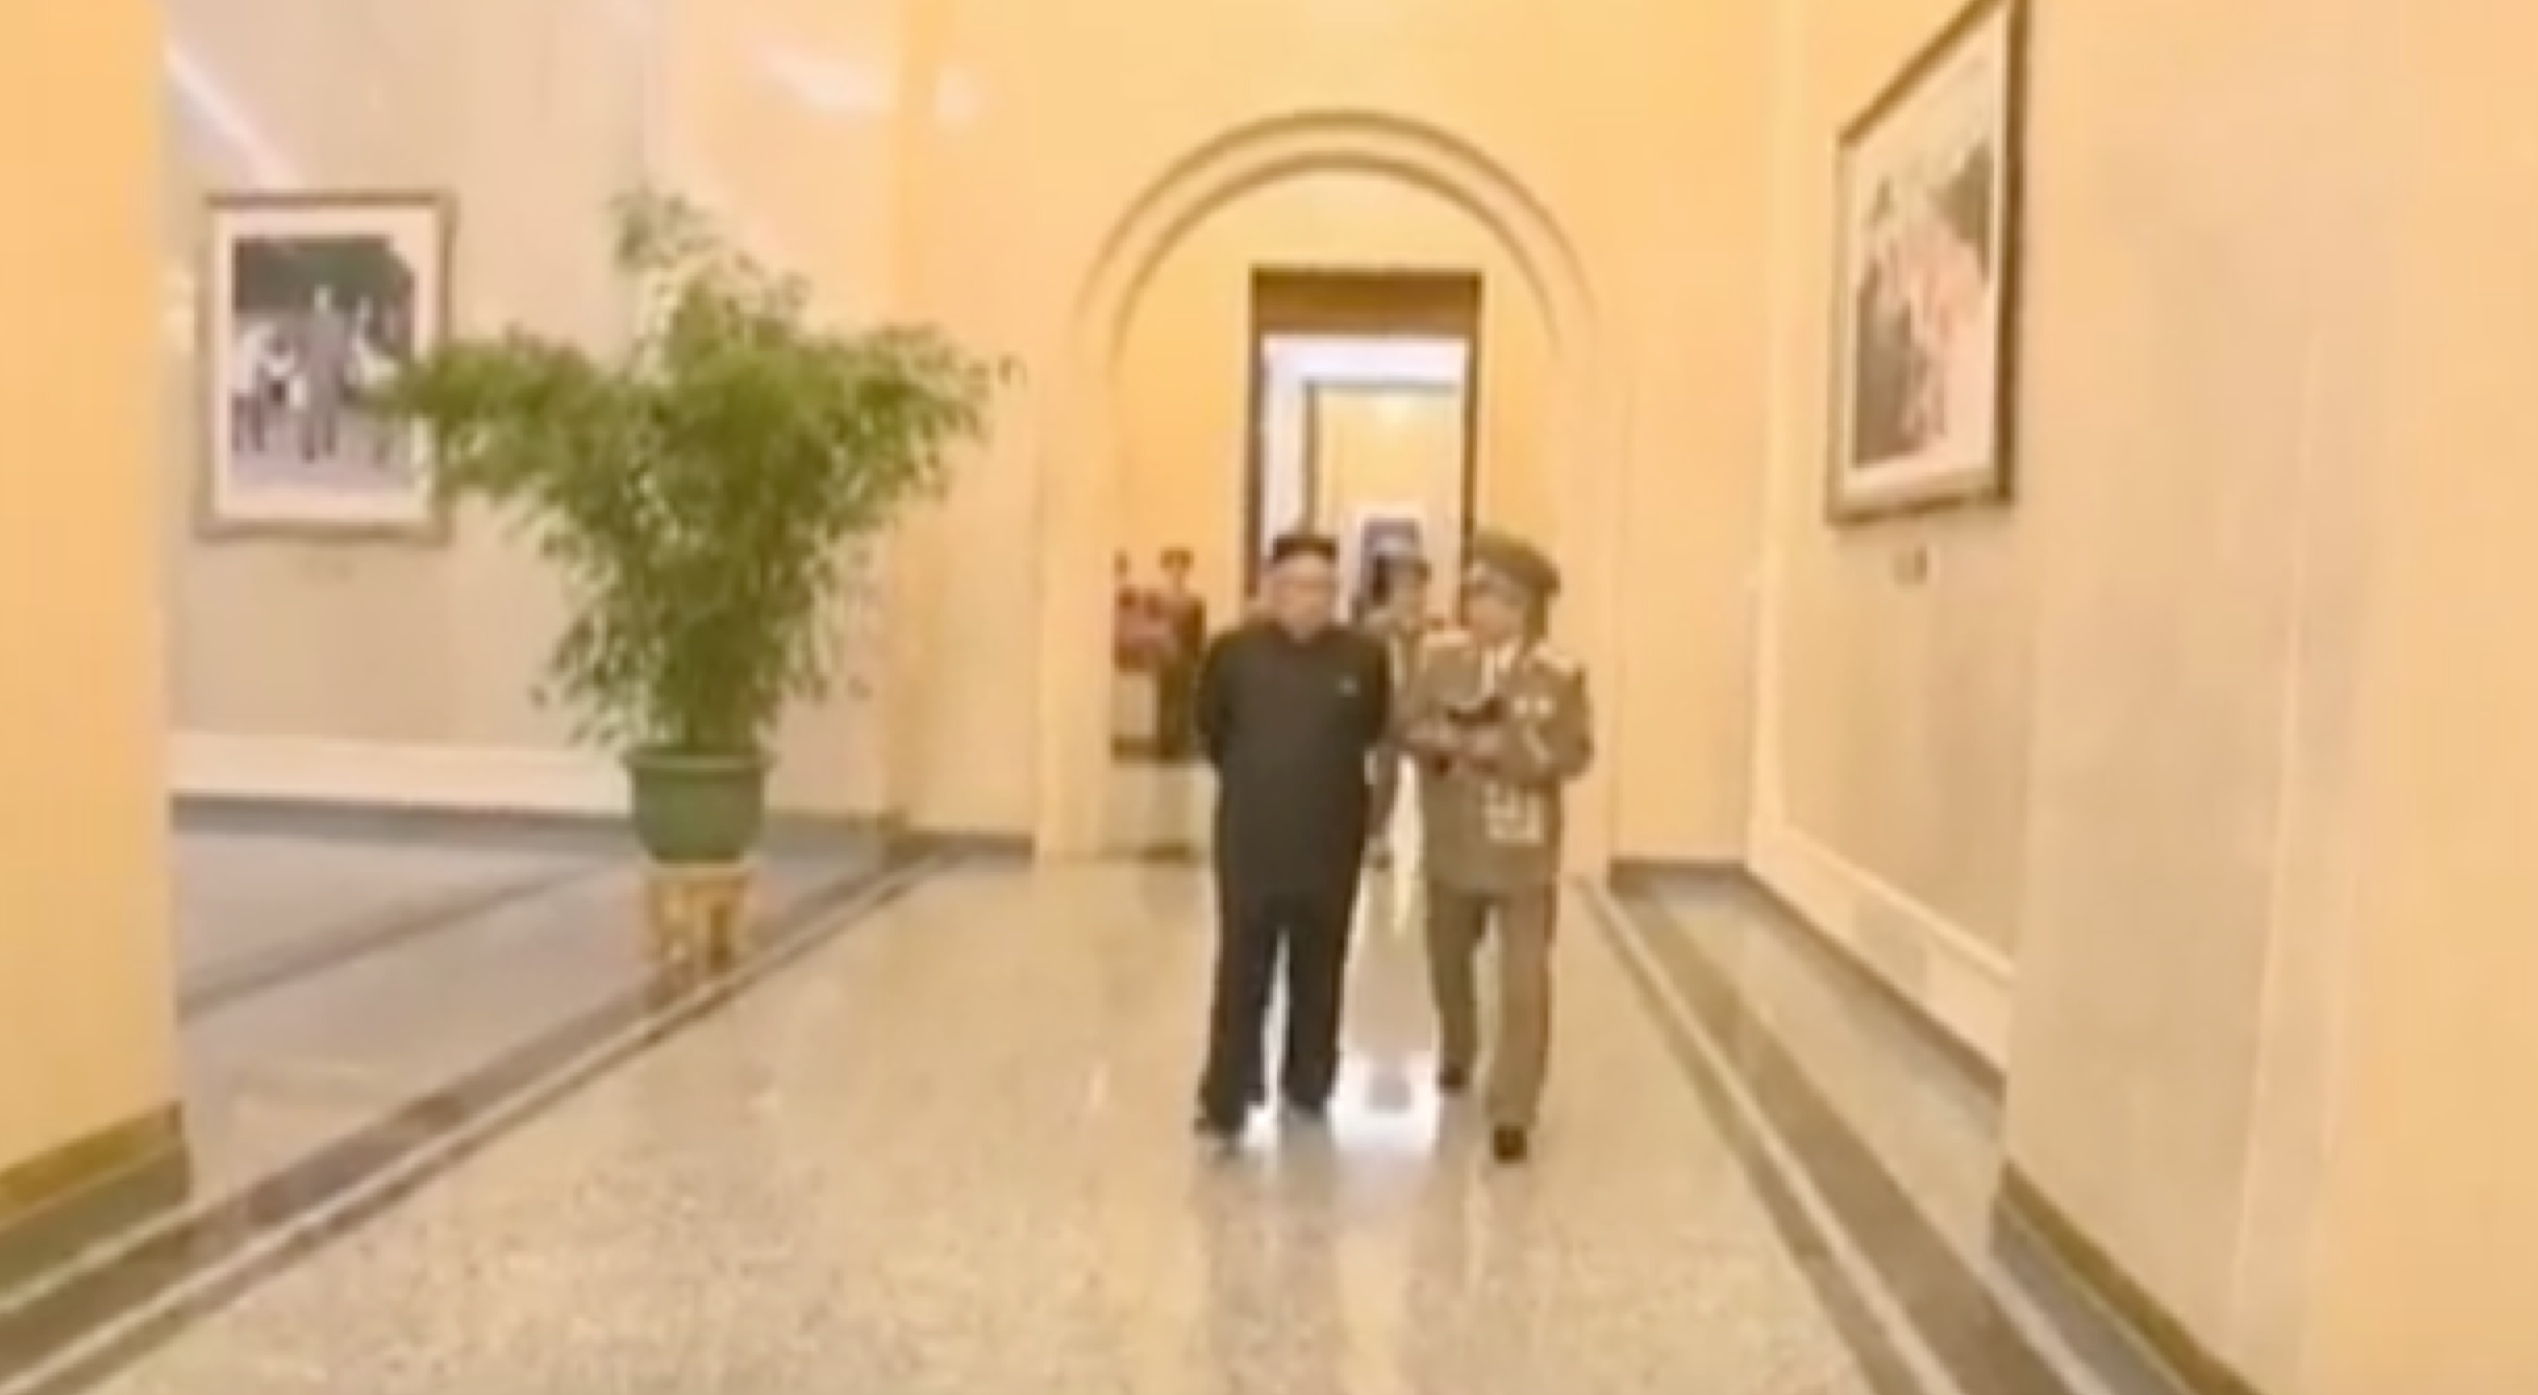 Kim Jong Un issues instructions to the director of the Ku'msusan Palace of the Sun on February 16, 2017 (Photo: Korean Central Television).